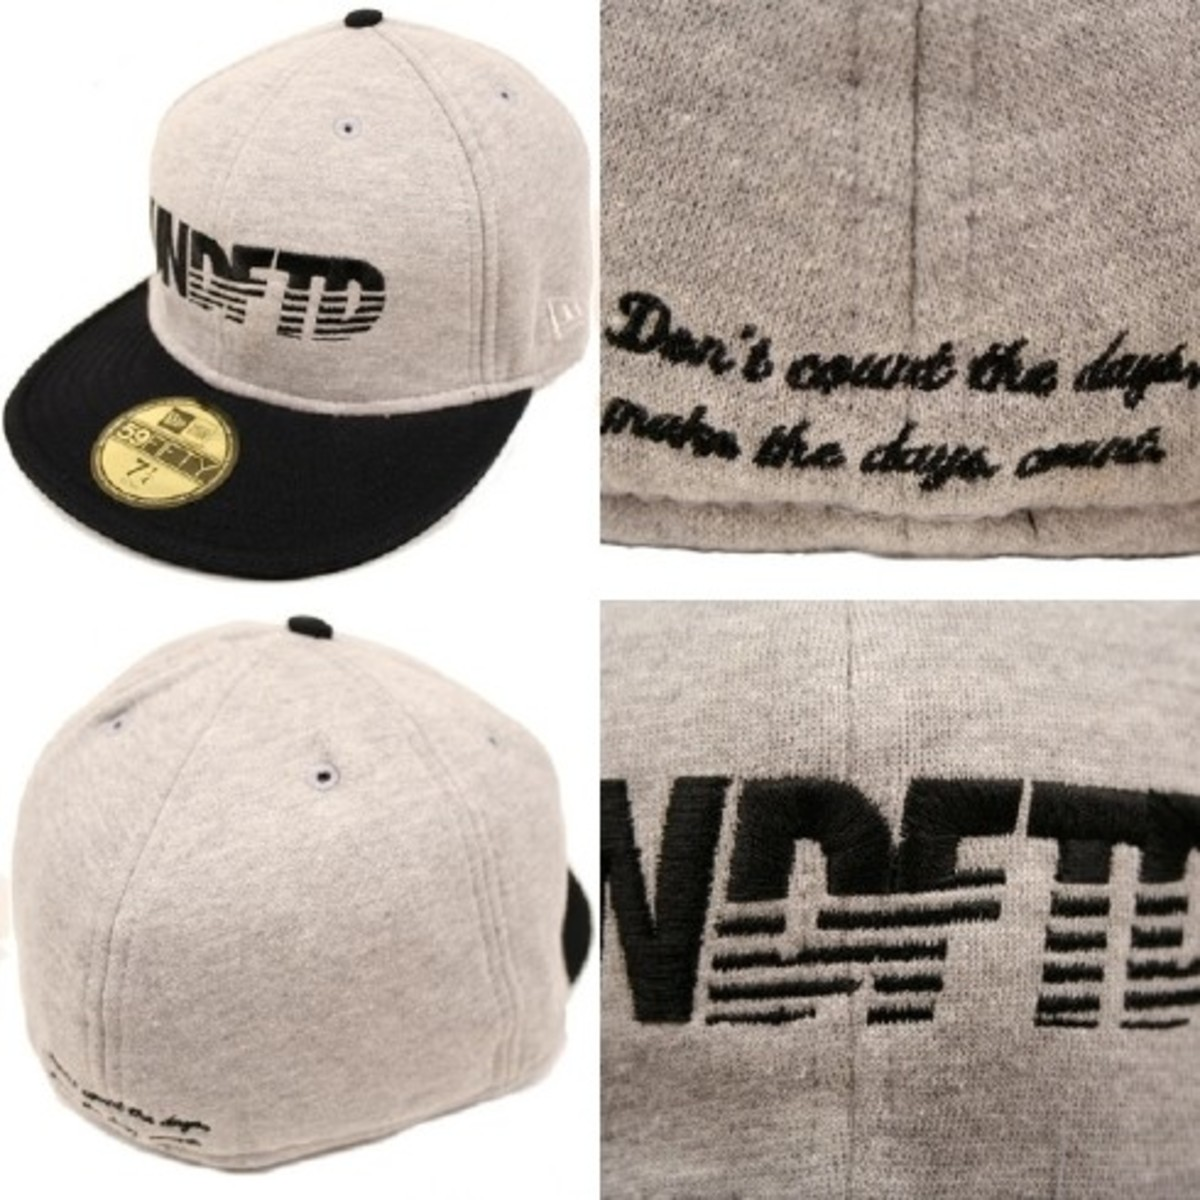 UNDFTD - Fall 2008 Collection - New Era Fitteds - 2